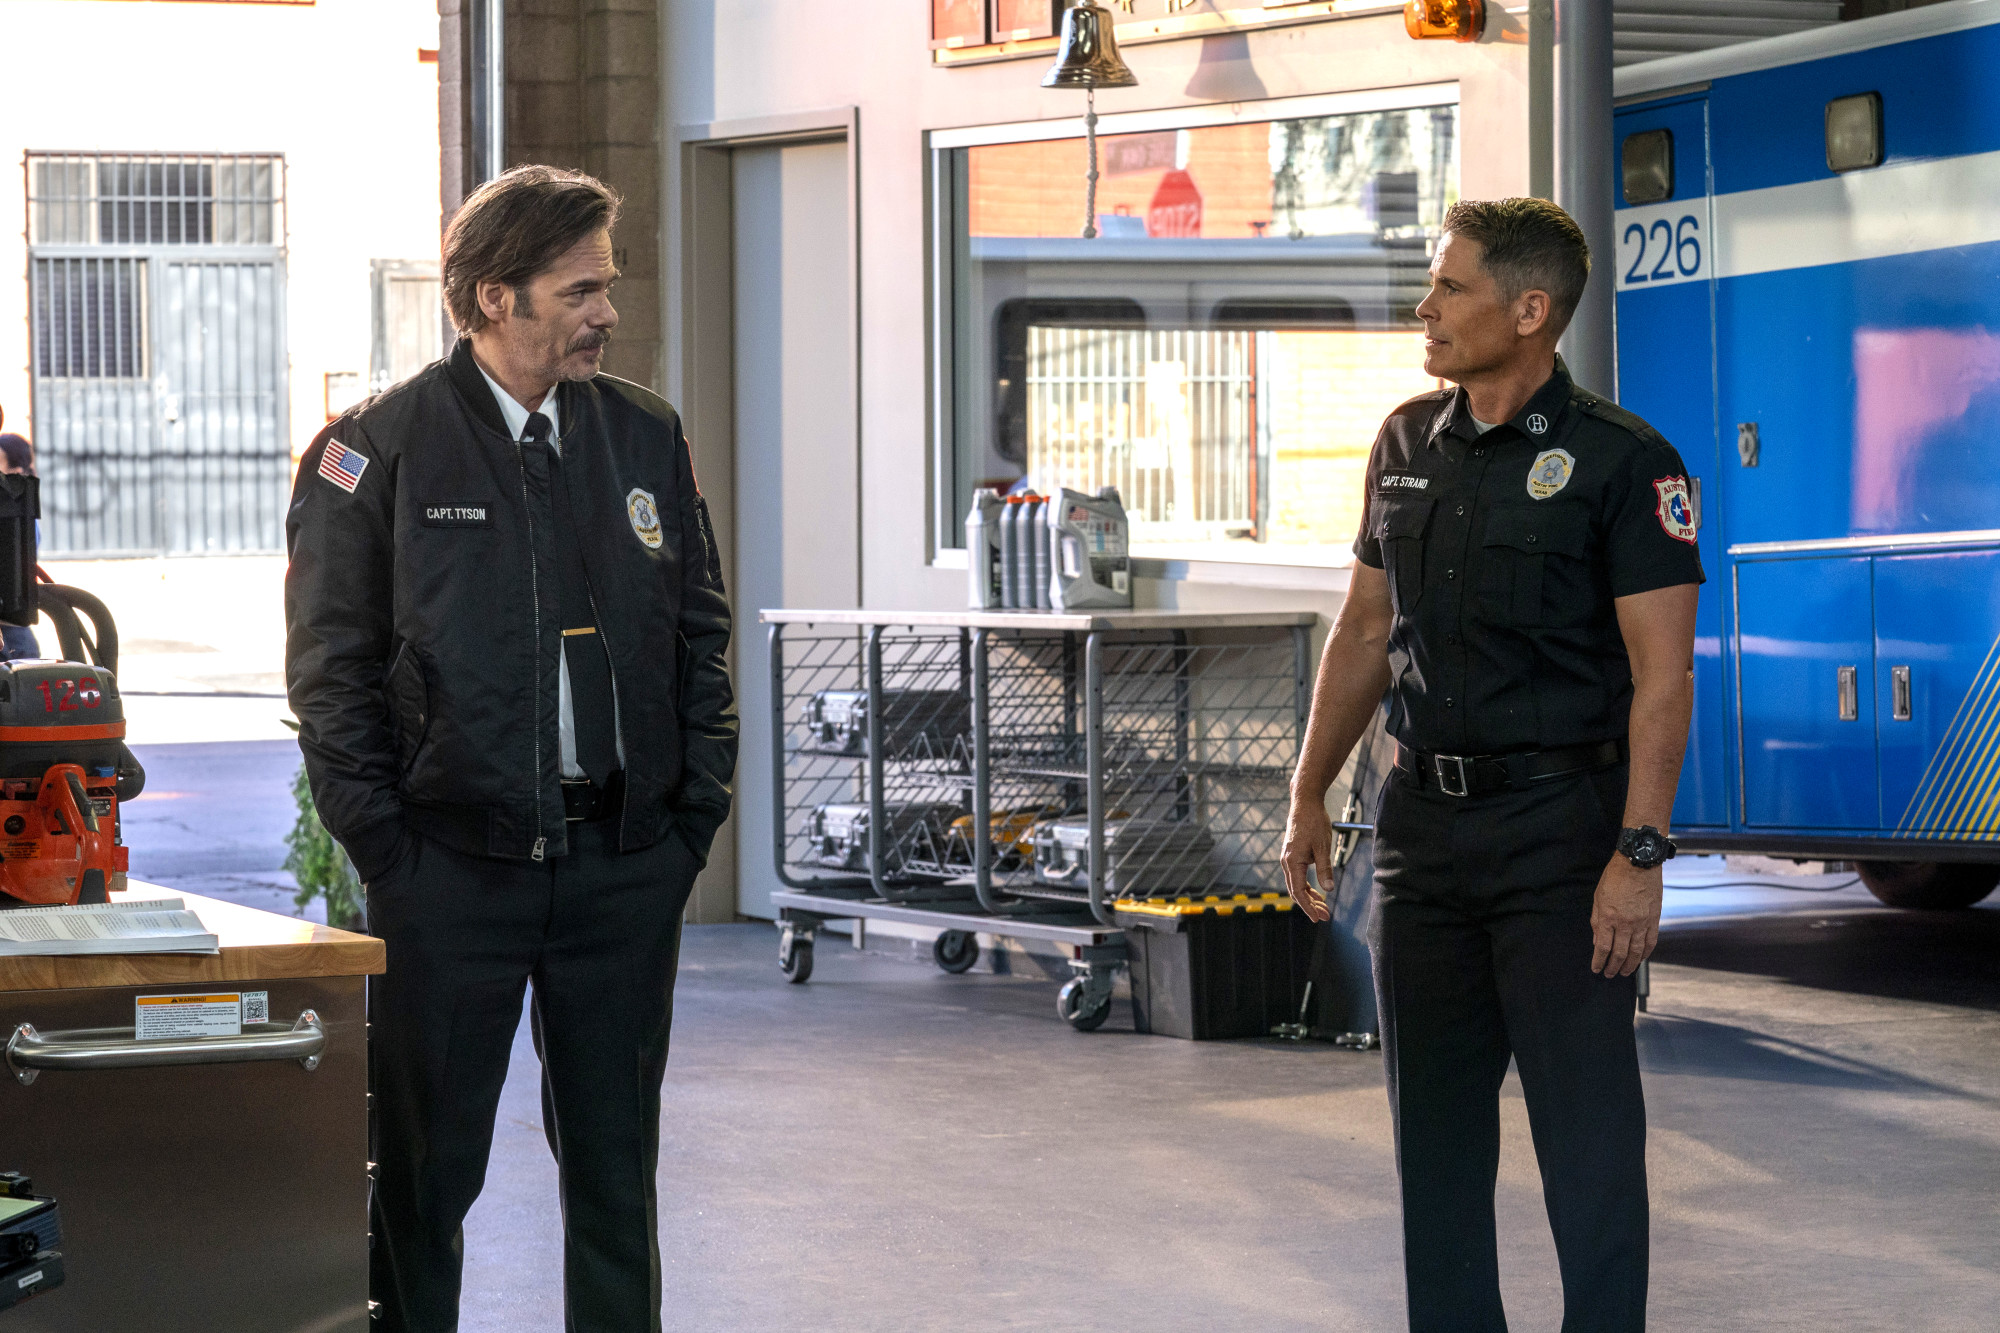 """9-1-1: LONE STAR: L-R: Guest star Billy Burke and Rob Lowe in the """"Friends Like These"""" episode of 9-1-1: LONE STAR airing Monday, Feb. 17 (8:00-9:01 PM ET/PT) on FOX. ©2020 Fox Media LLC. CR: Jack Zeman/FOX."""